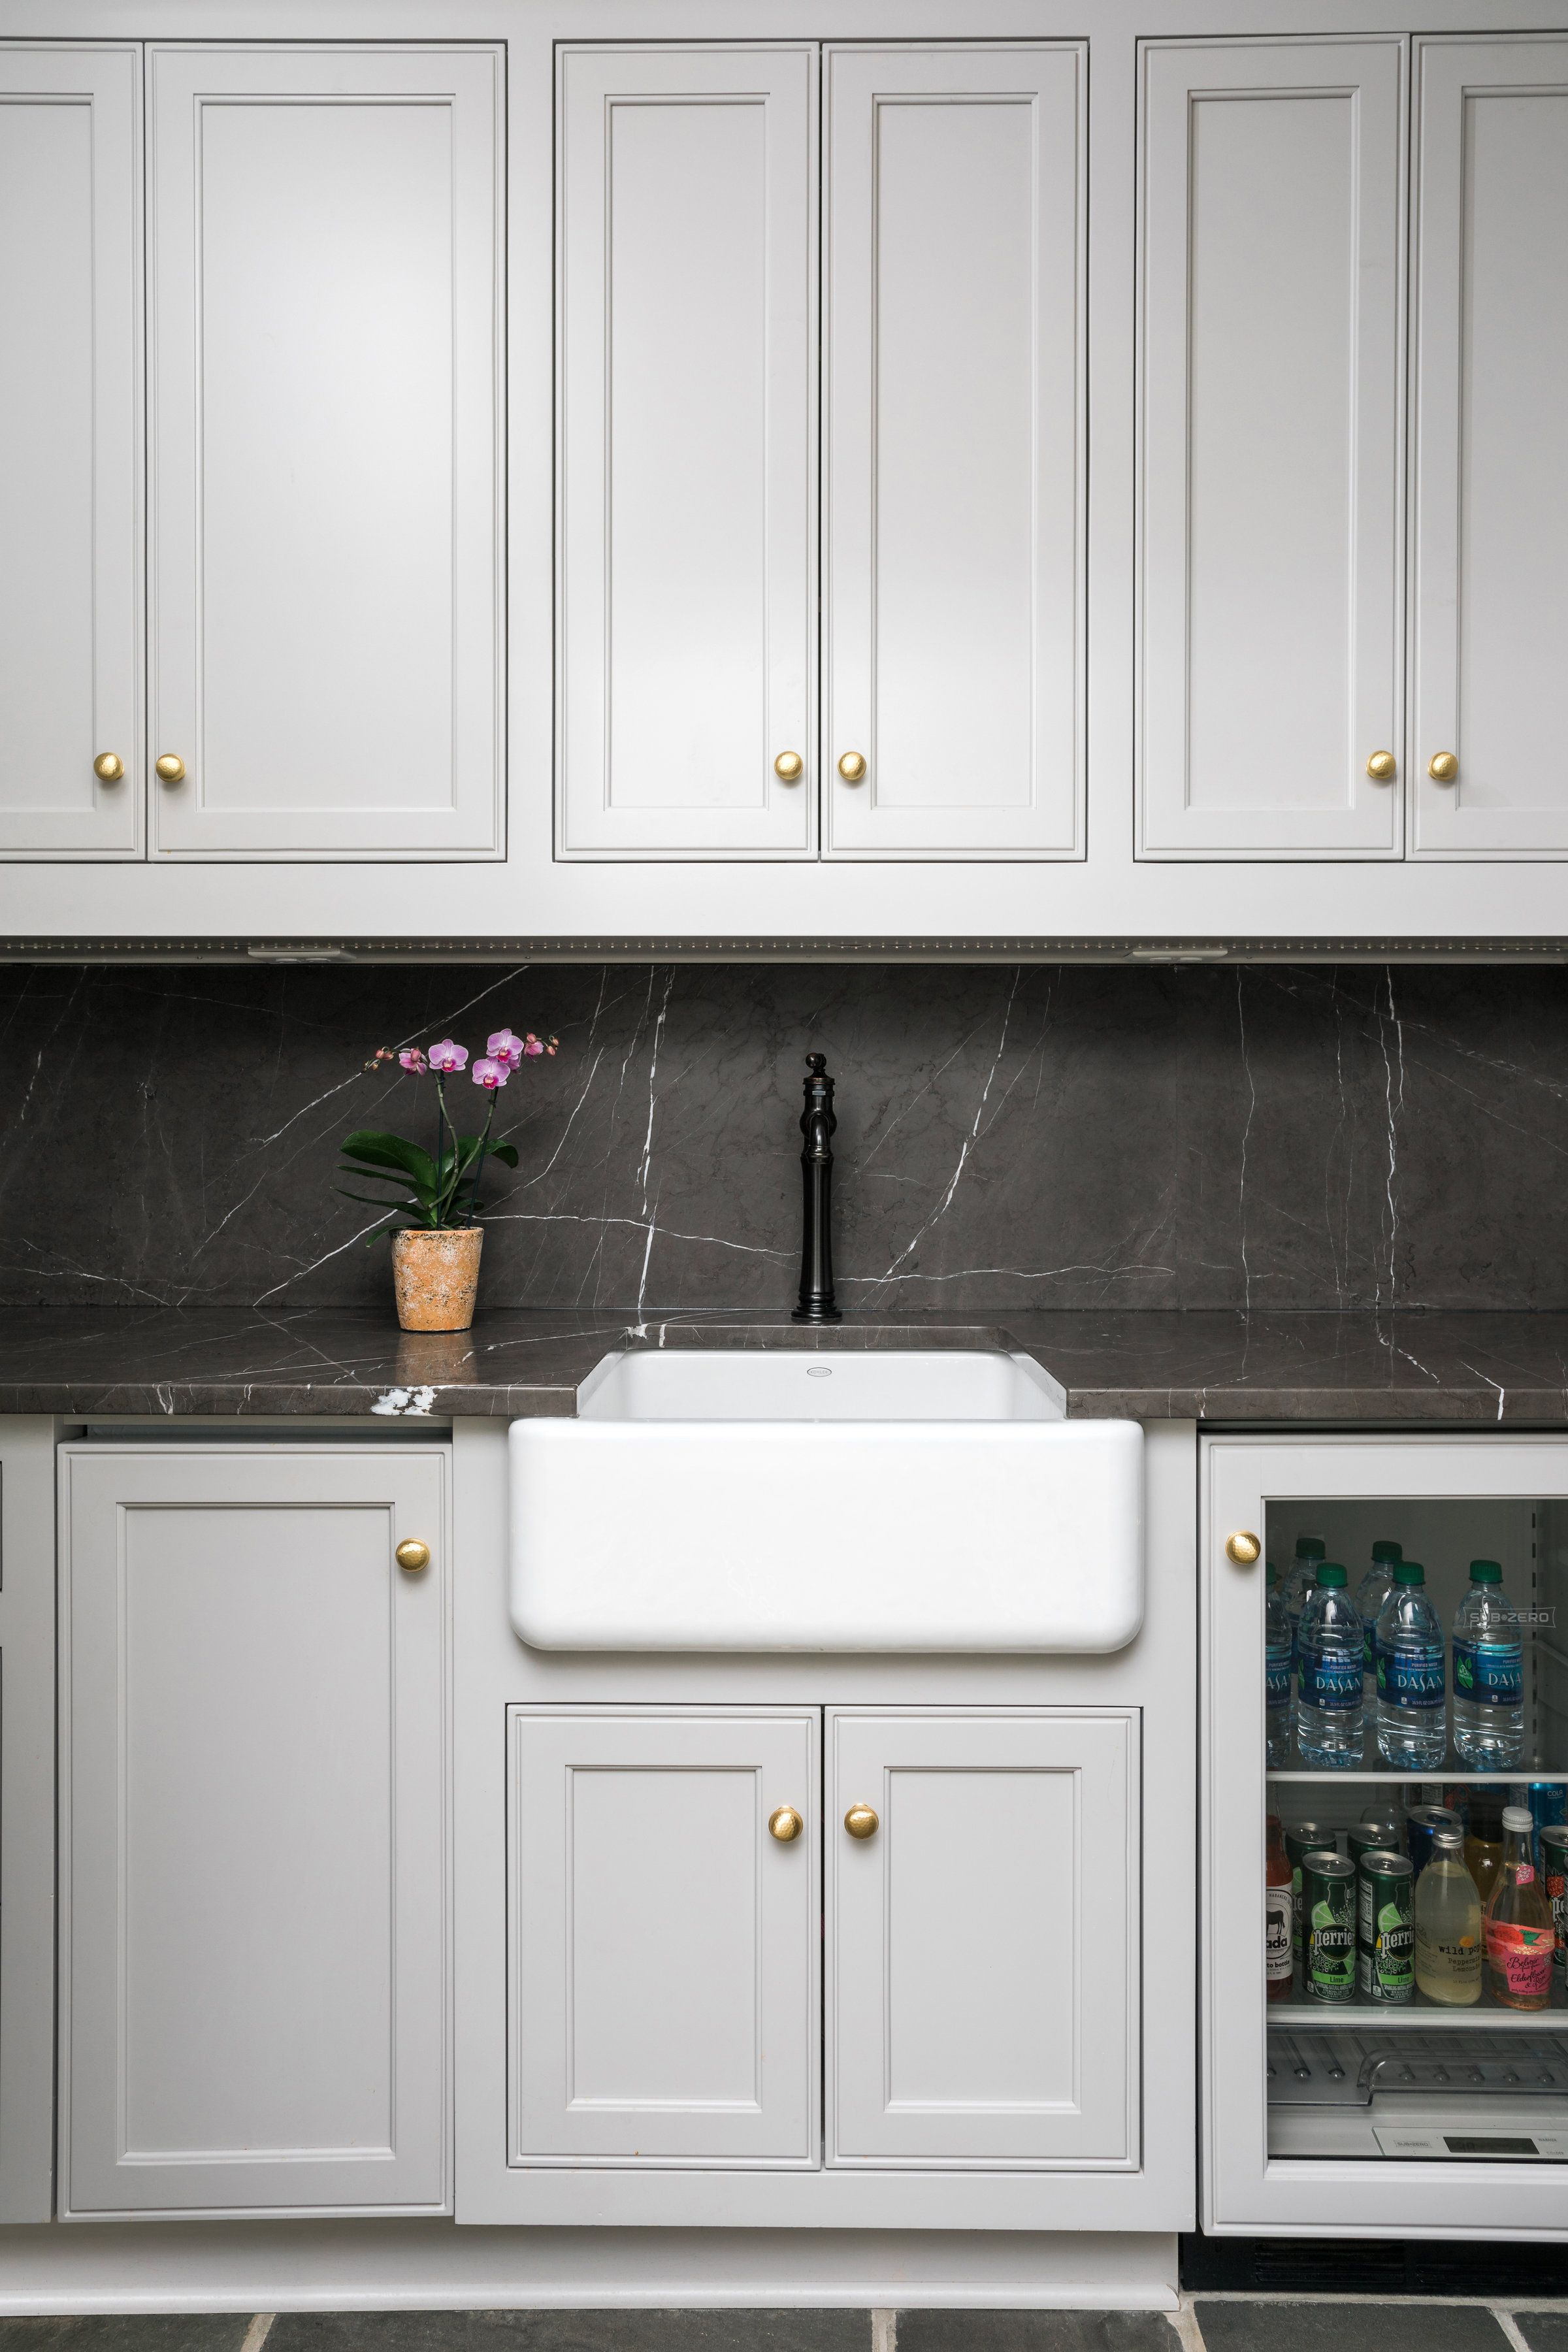 Black Marble Backsplash And Countertops On The Wet Bar With A White Apron Front Farmhouse Sink Beve Kitchen Remodel Small Kitchen Remodel Light Gray Cabinets